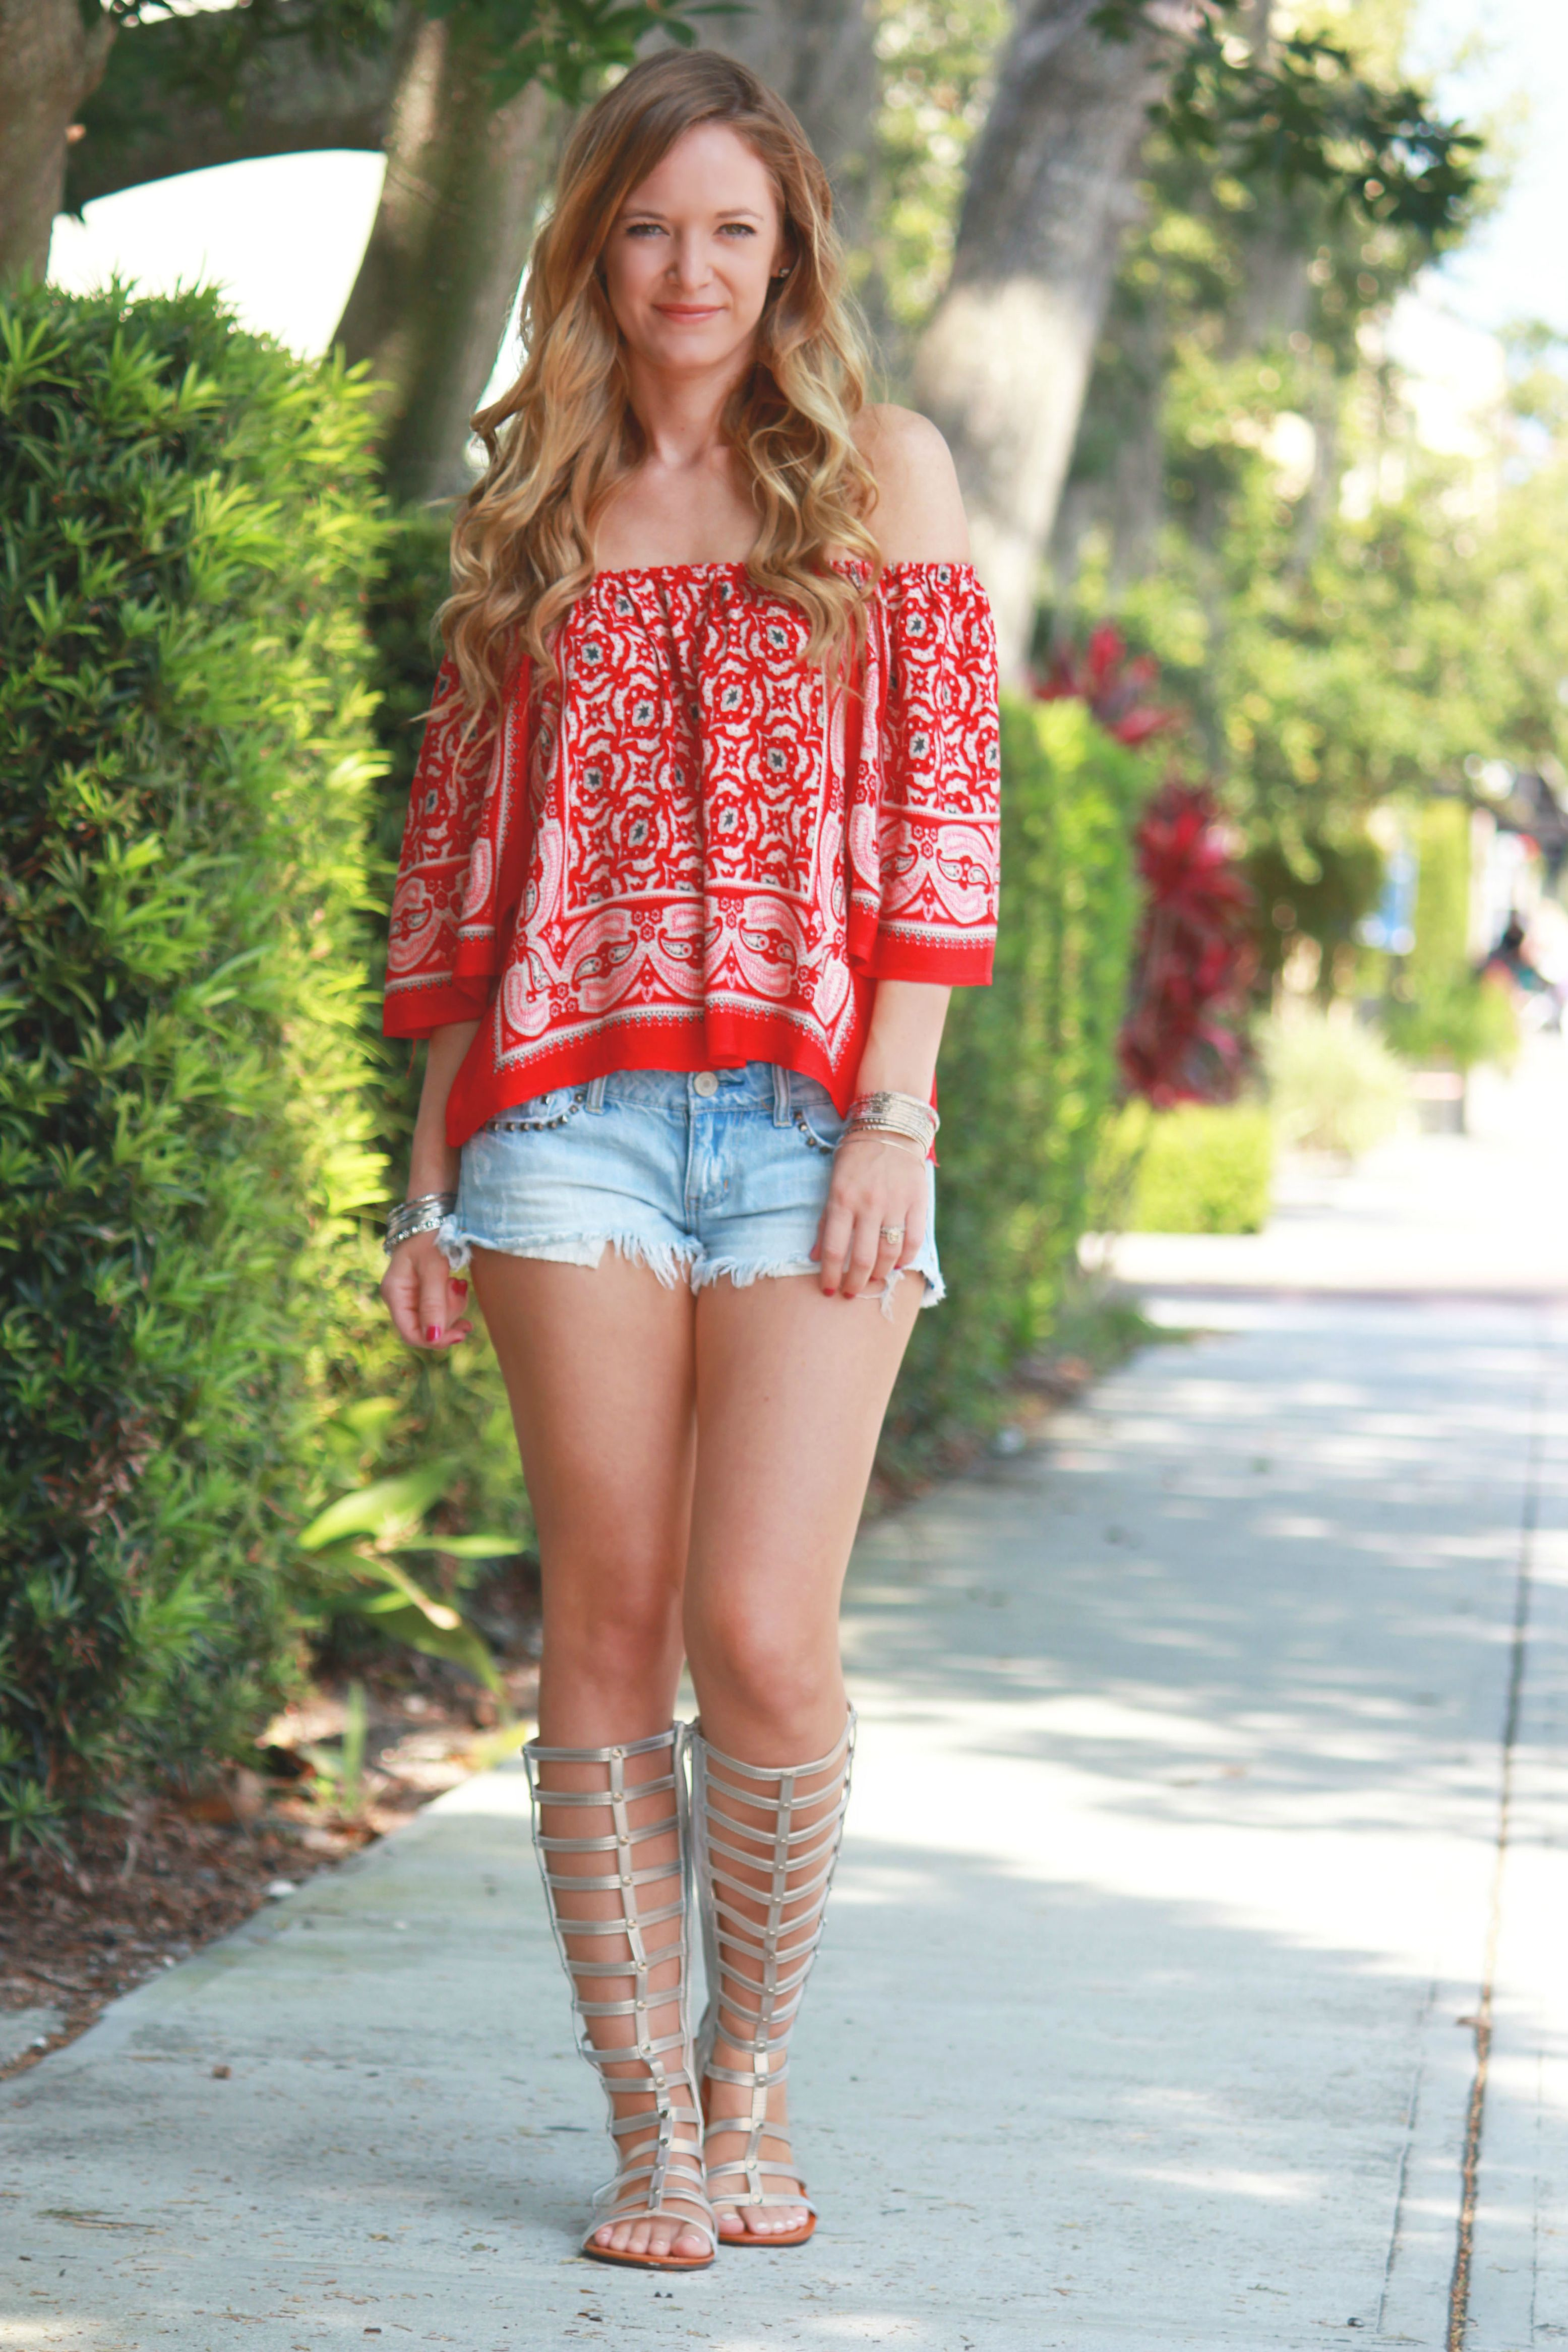 forever 21 top, peasant top, american eagle shorts, knee high gladiator sandals, ami clubwear, summer outfit, 4th of july outfit